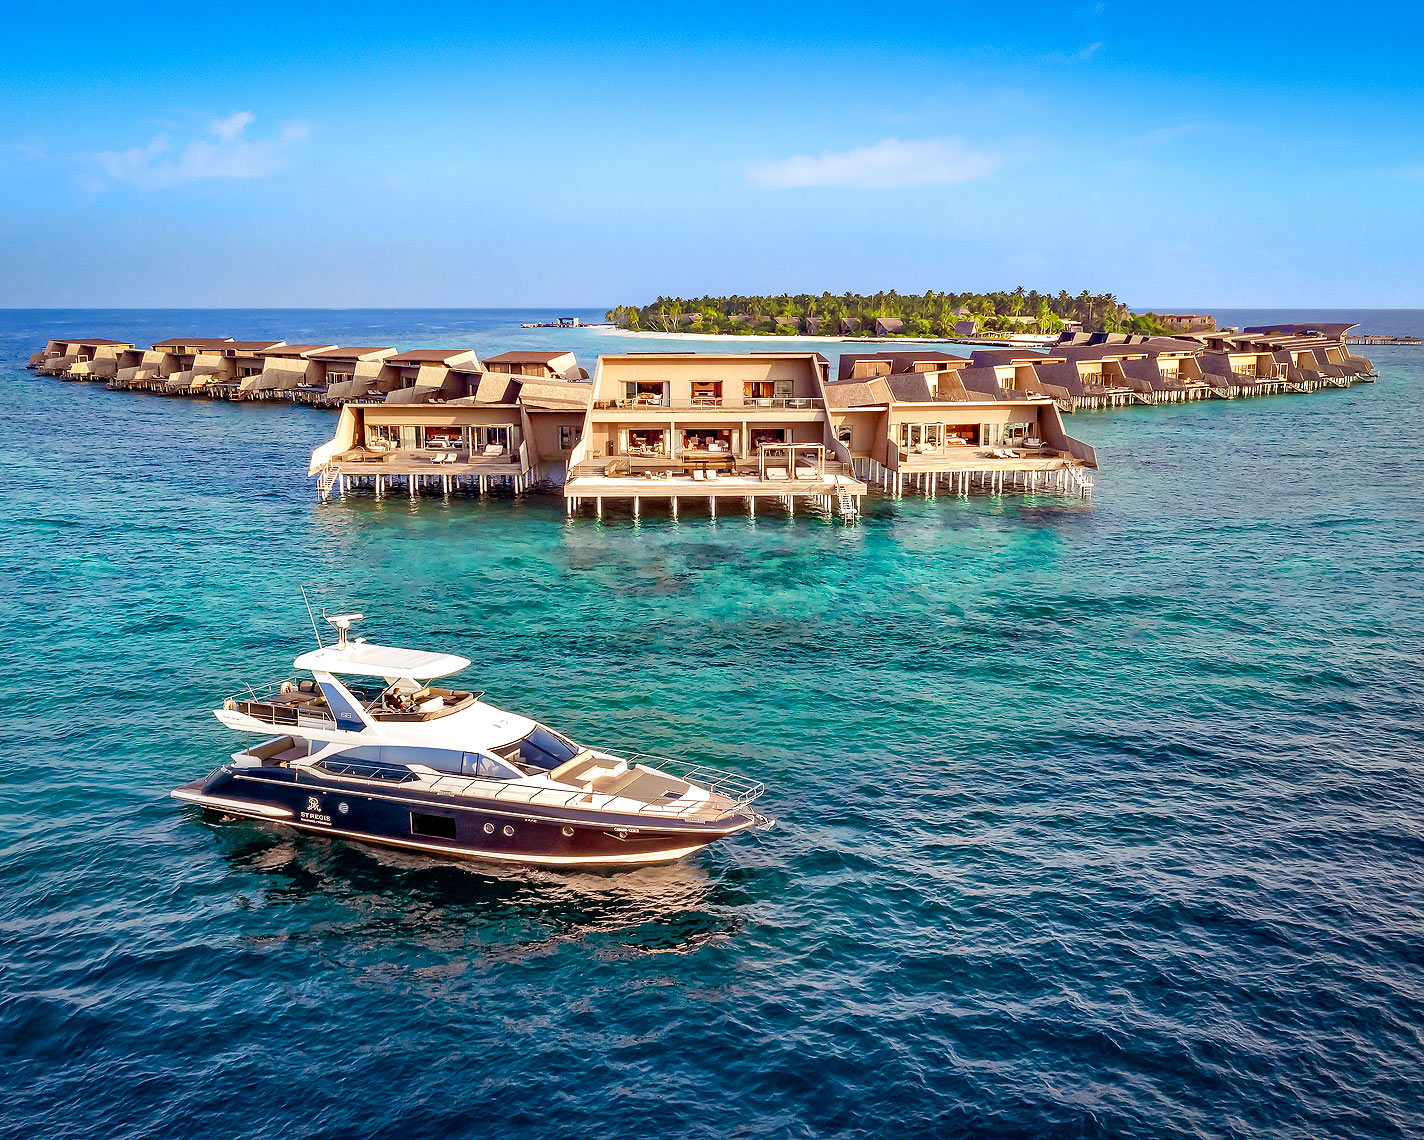 St Regis Resort Hotel, Maldives - Norma Luxury Yacht and overview of property